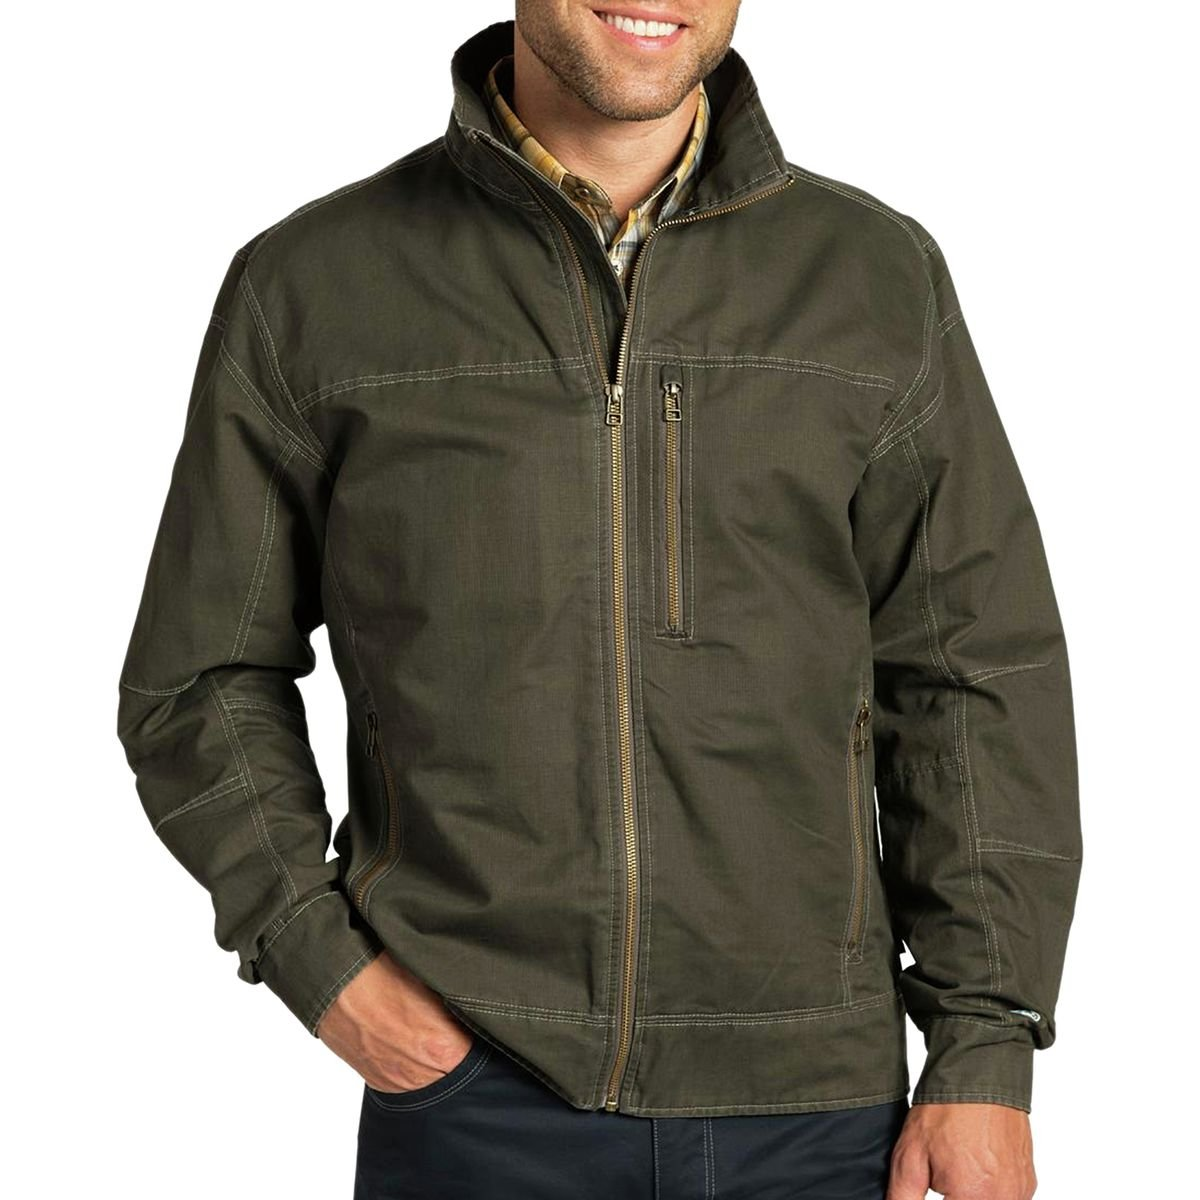 Amazon.com: Kuhl Mens Canvas Classic Burr Jacket (X-Large, Gun Metal): Sports & Outdoors